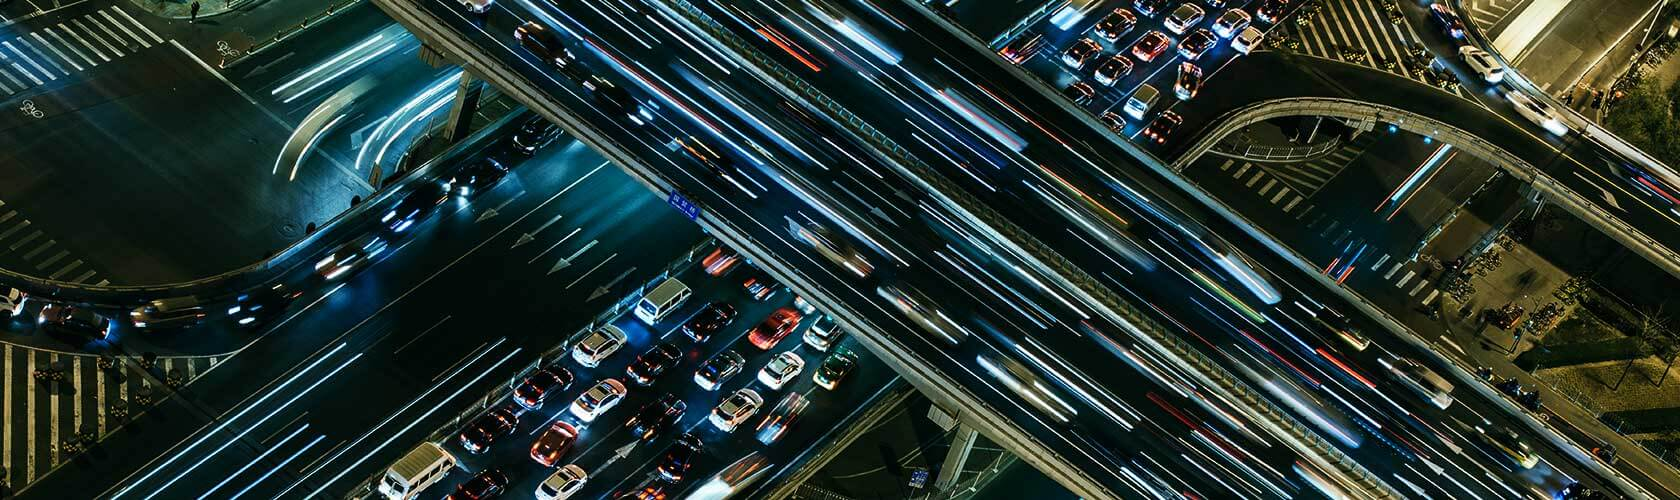 belkin-banner-freeway-night-overhead-1680x500.jpg